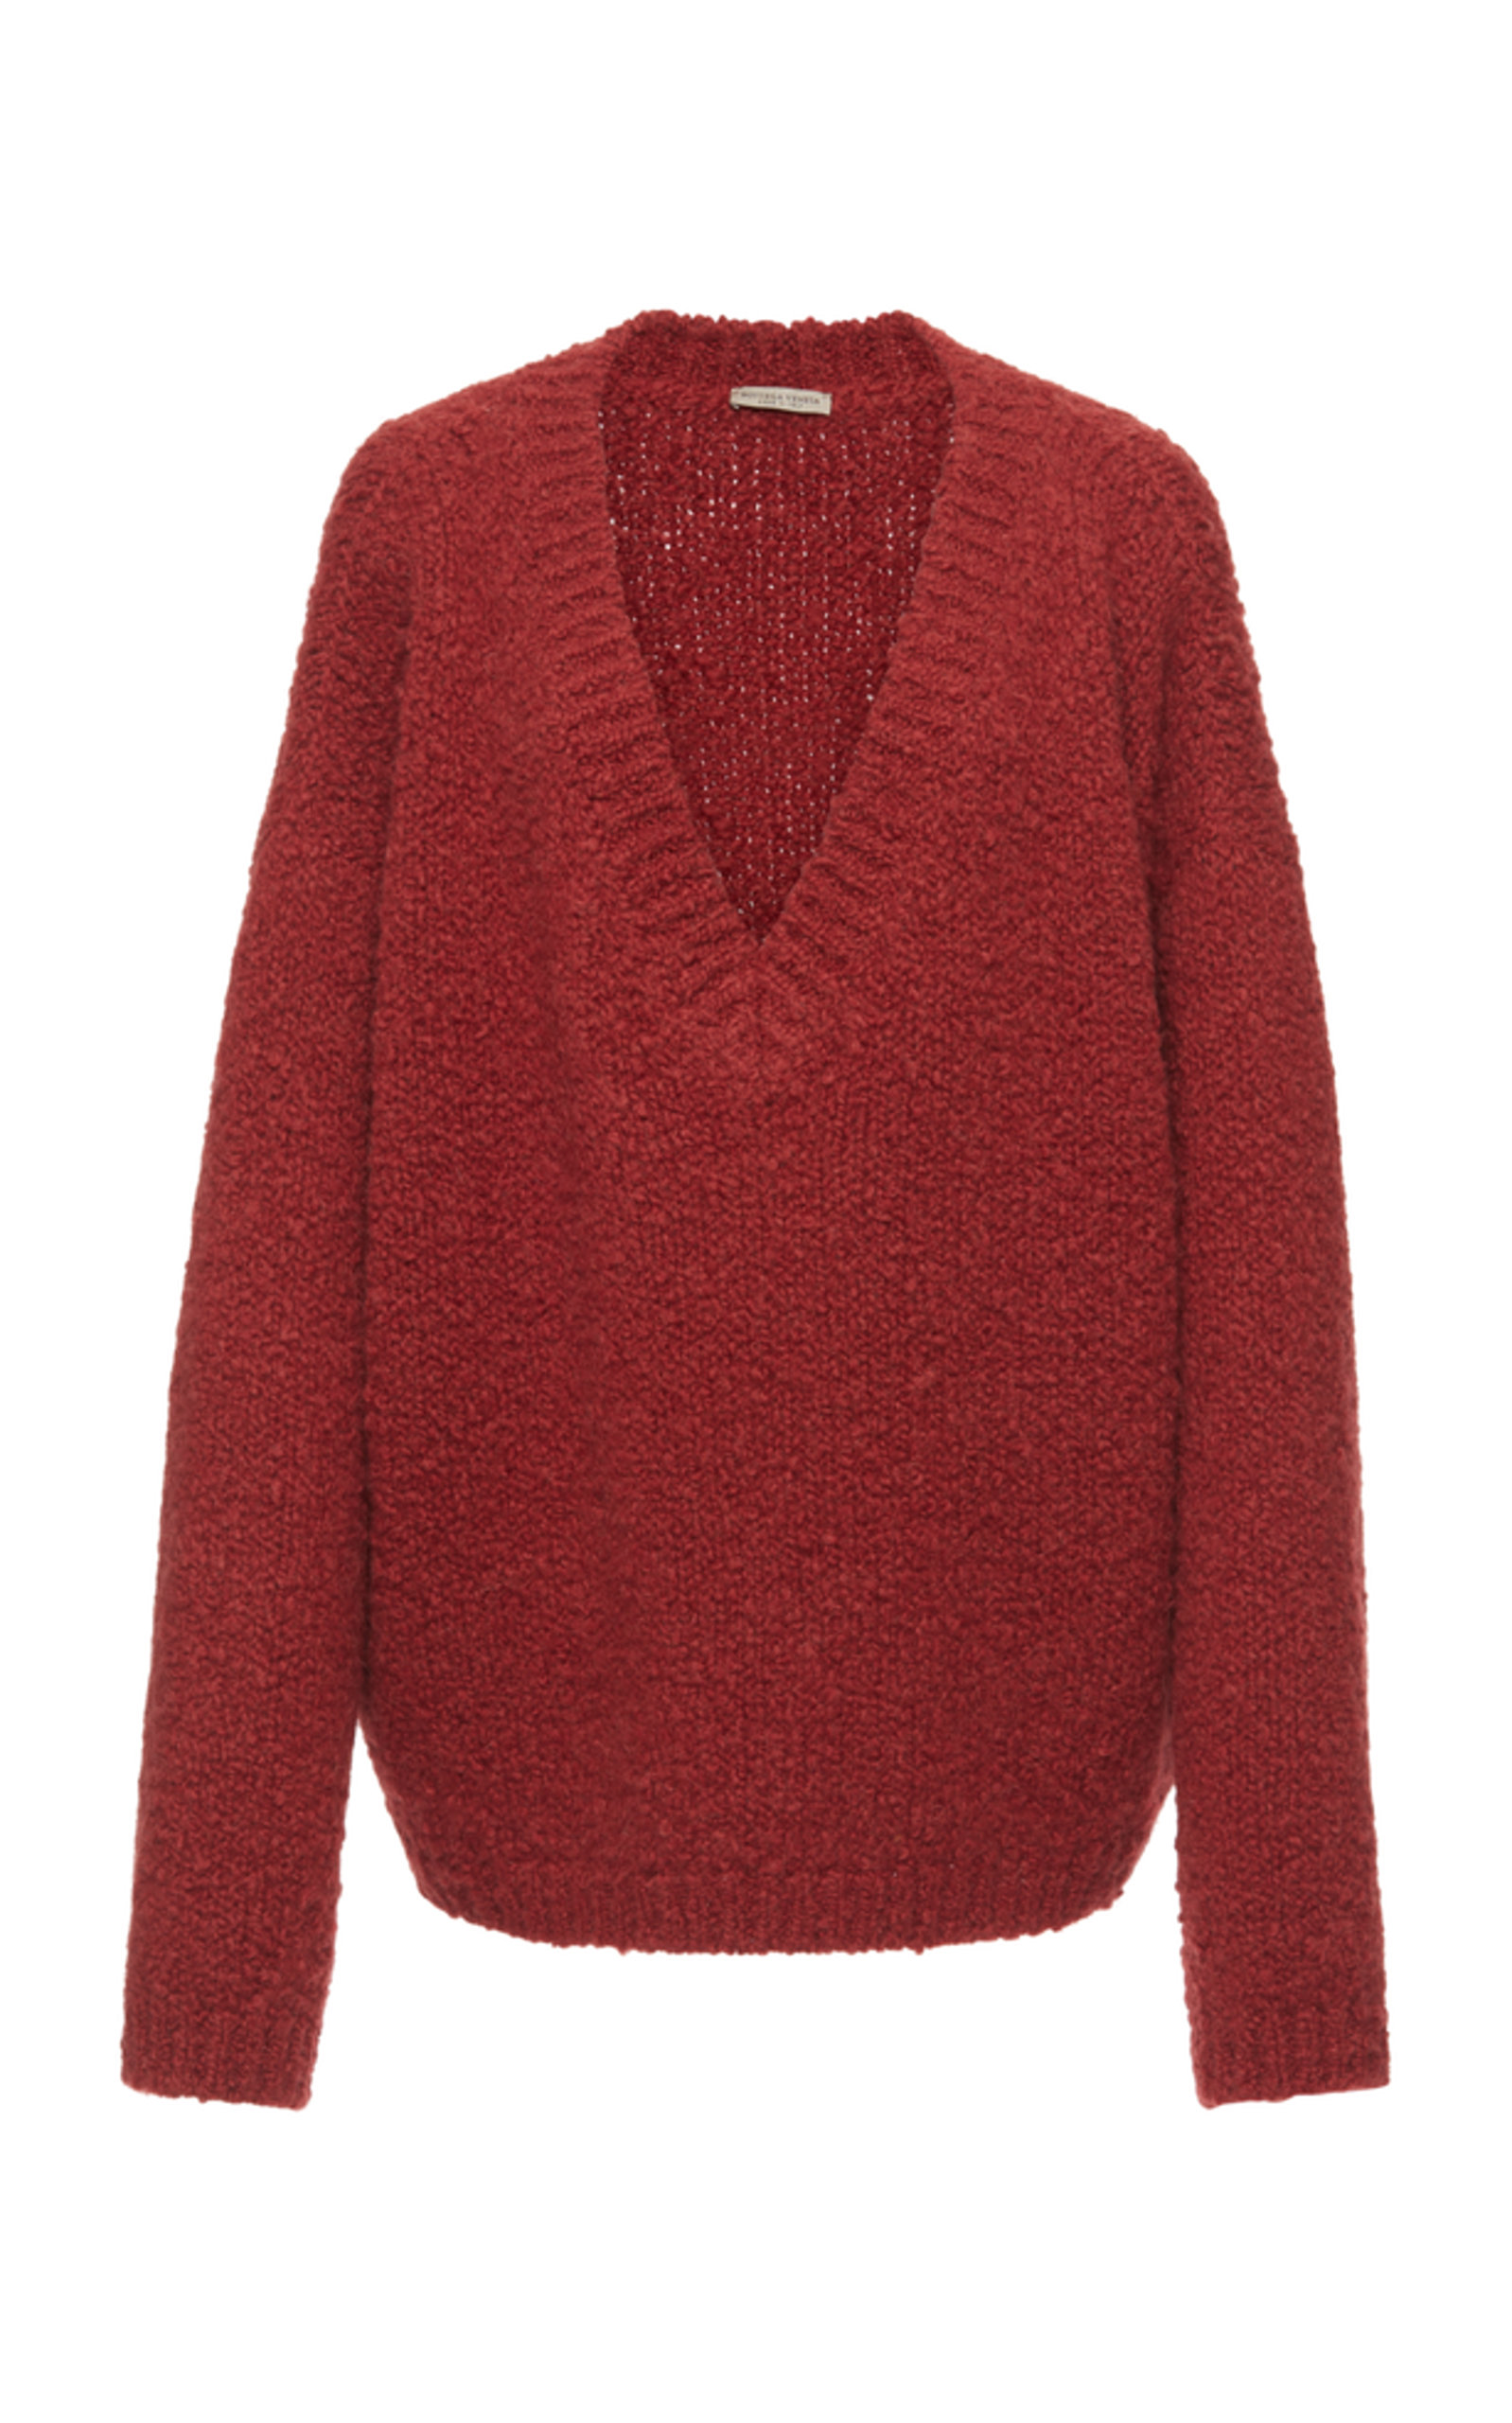 BOTTEGA VENETA | Bottega Veneta Textured V-Neck Sweater | Goxip